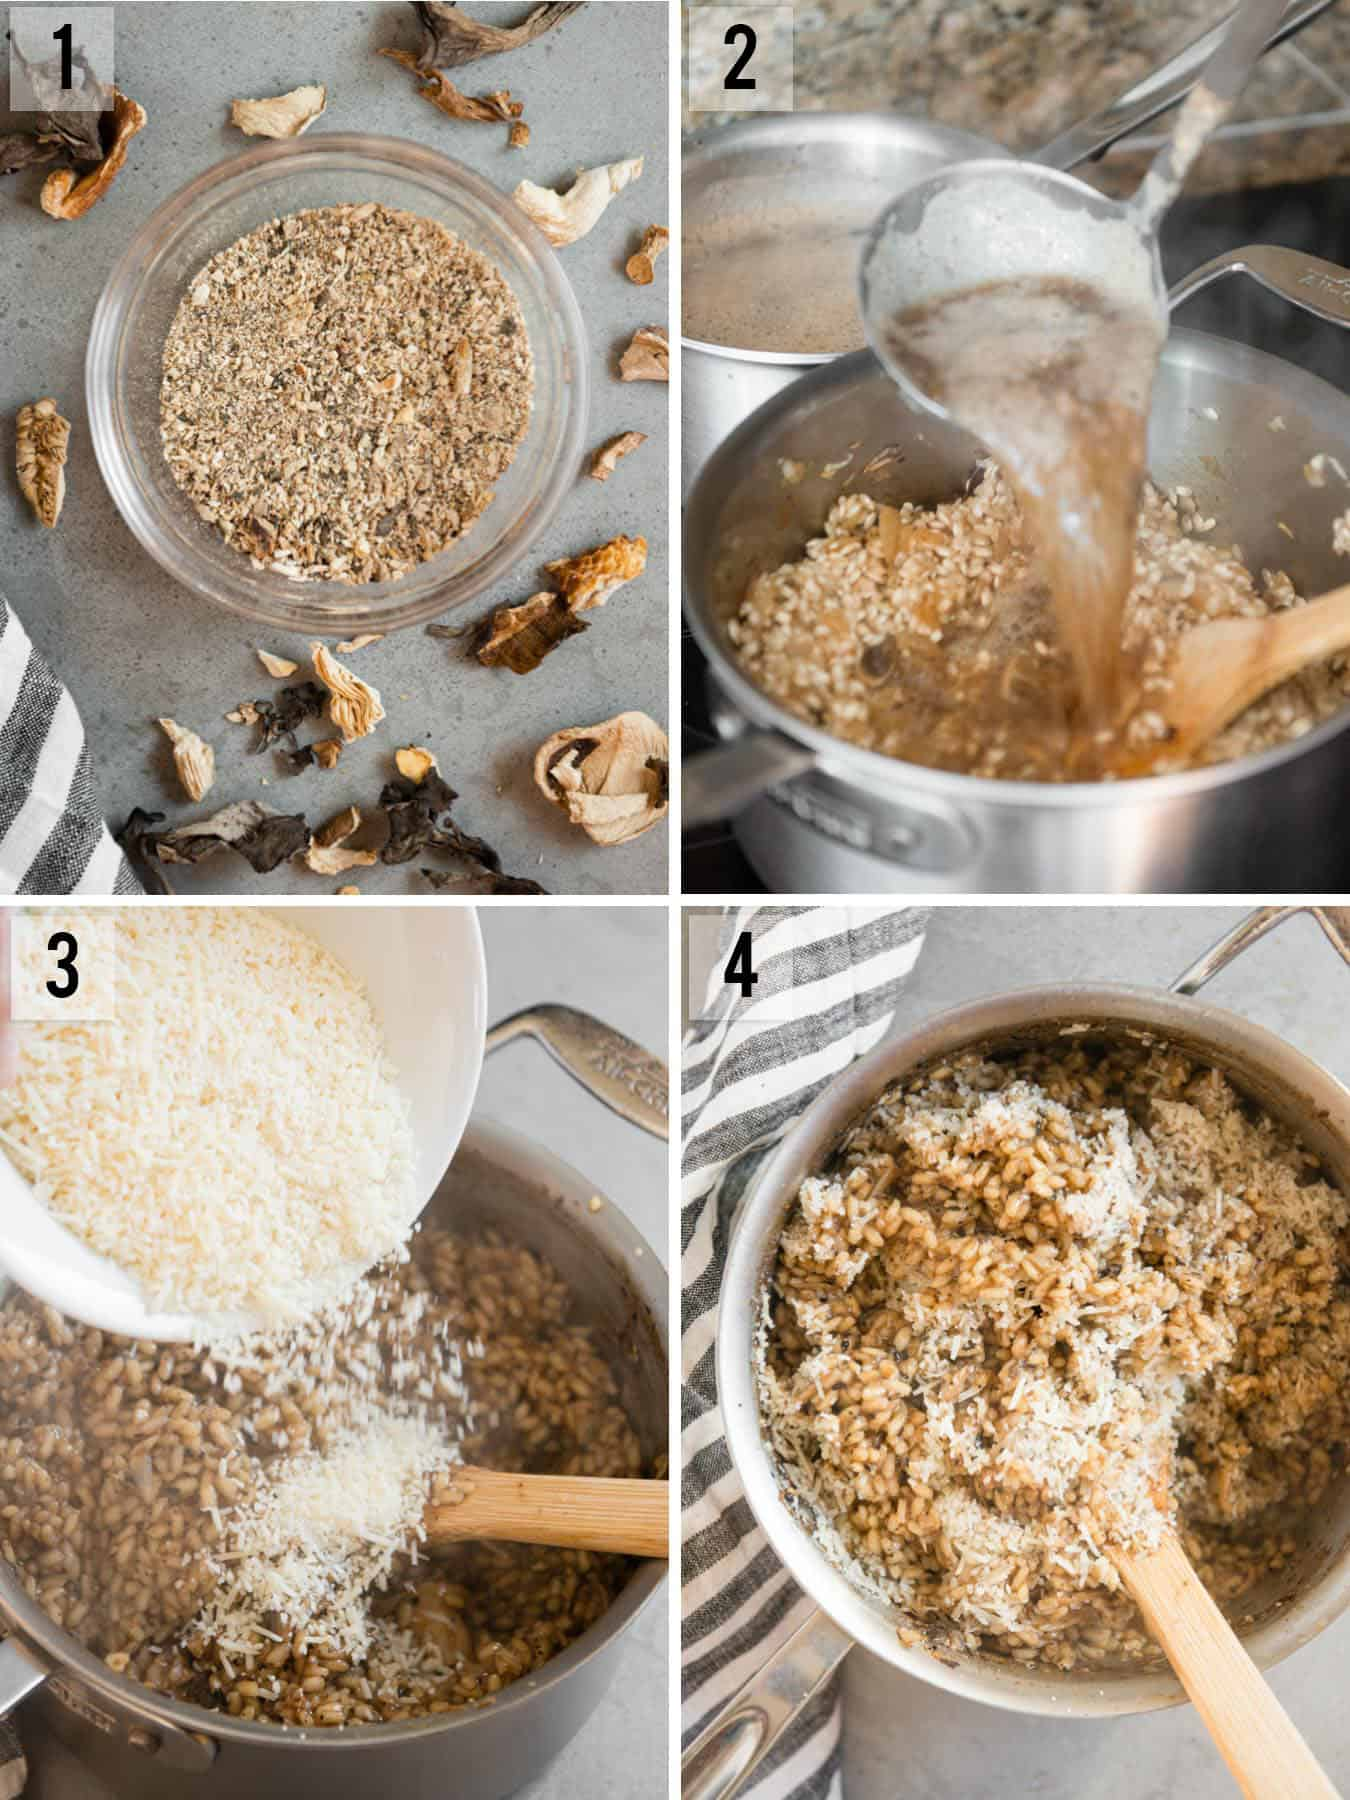 step by step photos of how to make Mushroom flavored Risotto